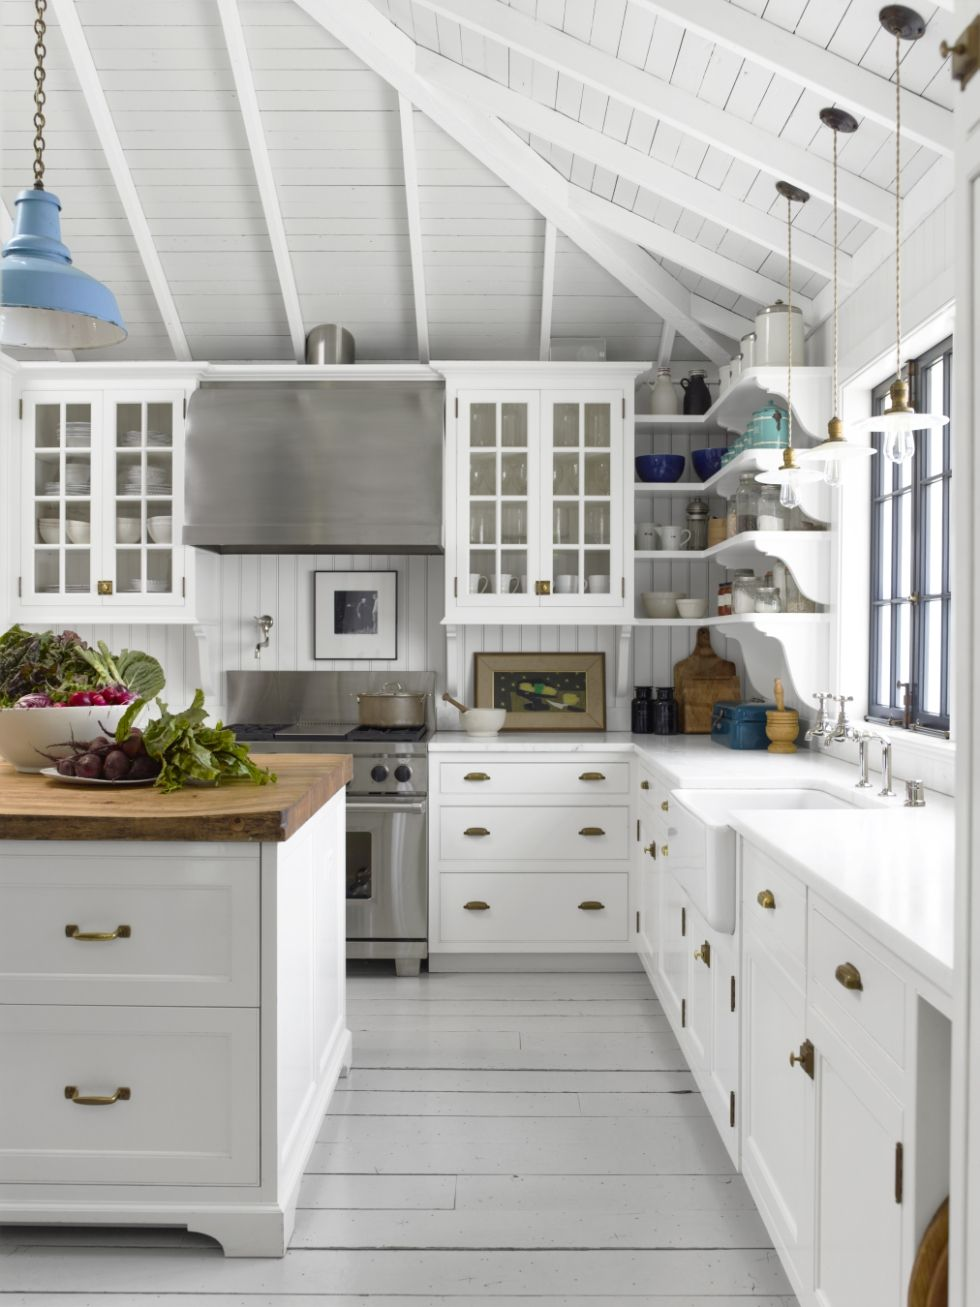 Okay I know I say this all the time, but I really think this is my favourite kitchen ever. In my top ten anyway. And at very least, it's proof that an all-white kitchen doesn't have to be boring.